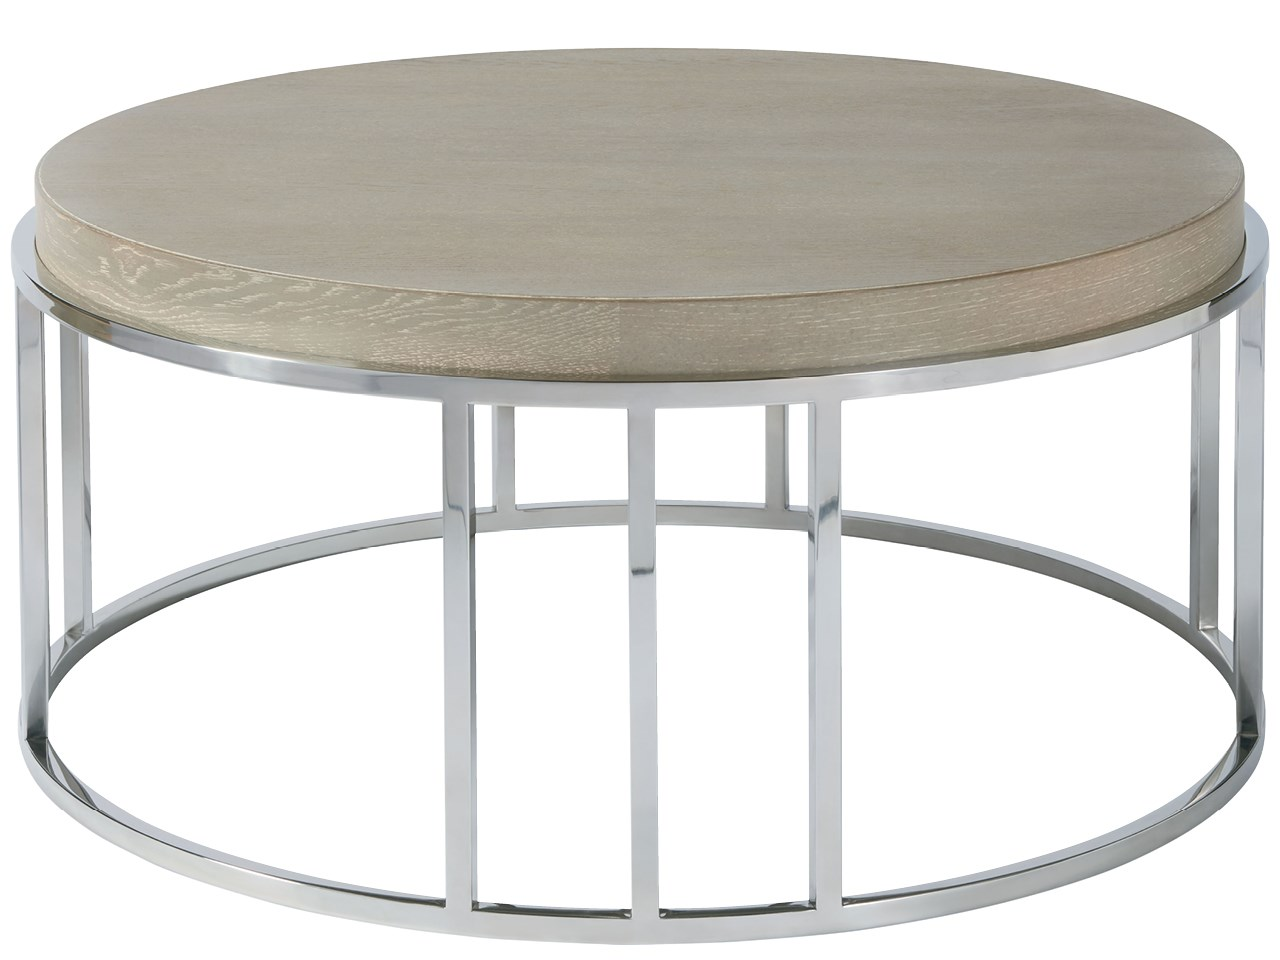 Zephyr Round Cocktail Table Universal Furniture